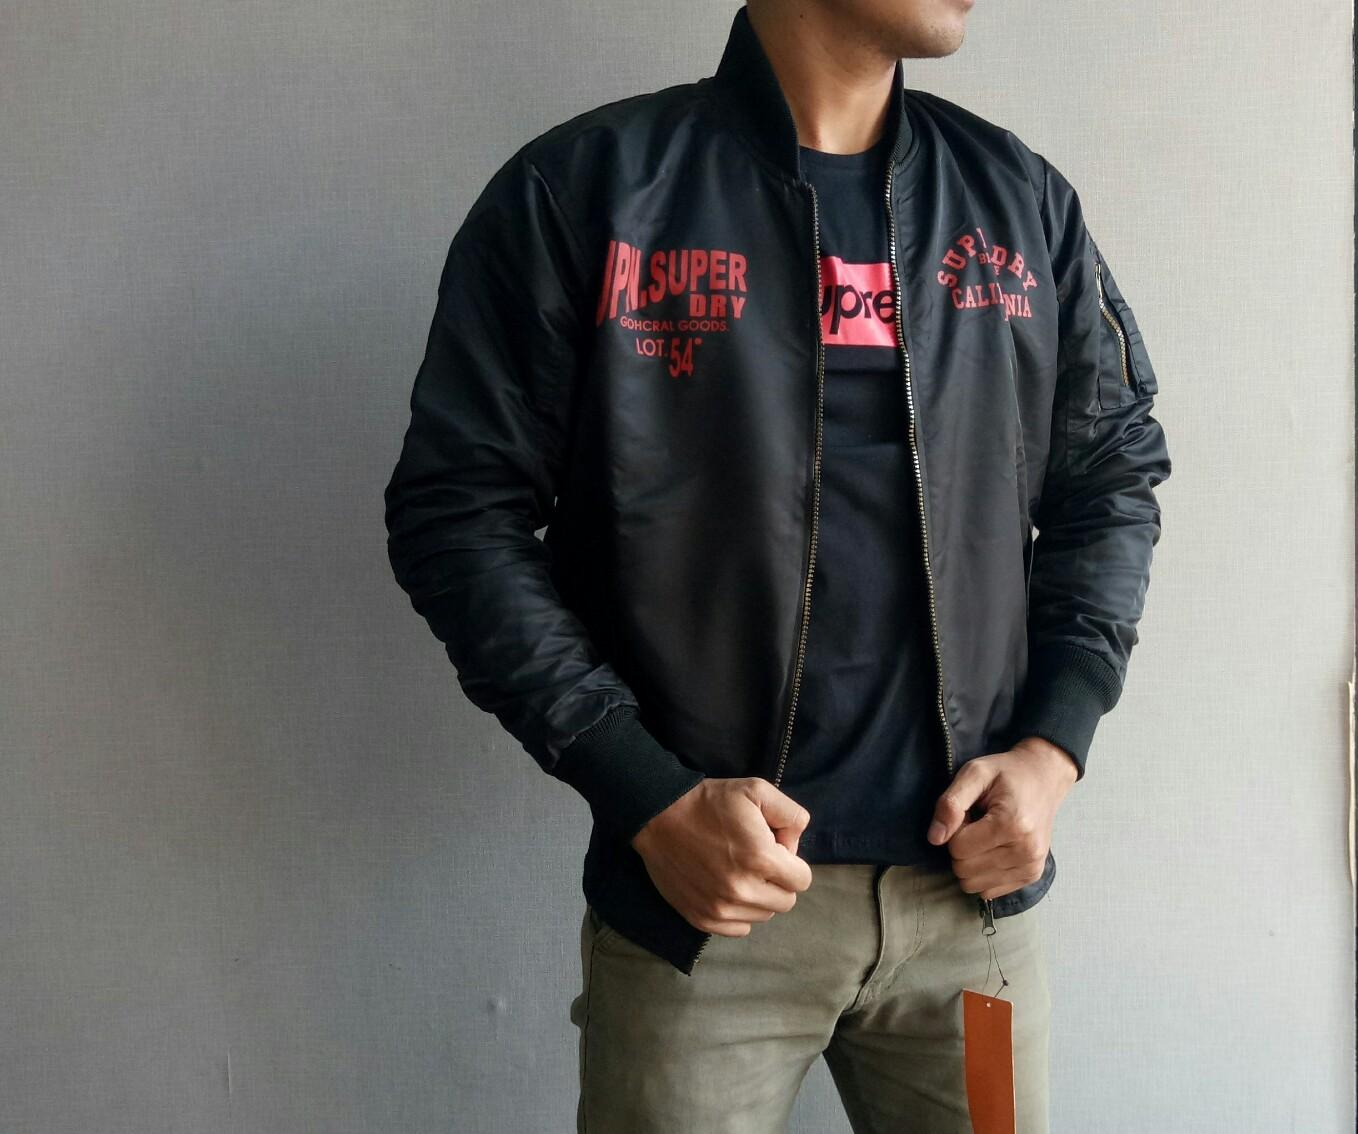 the most - Jaket Bomber Hitam / Navy Pria Casual Fashion jaket Bomber Murah Jaket Bomber Terlaris B